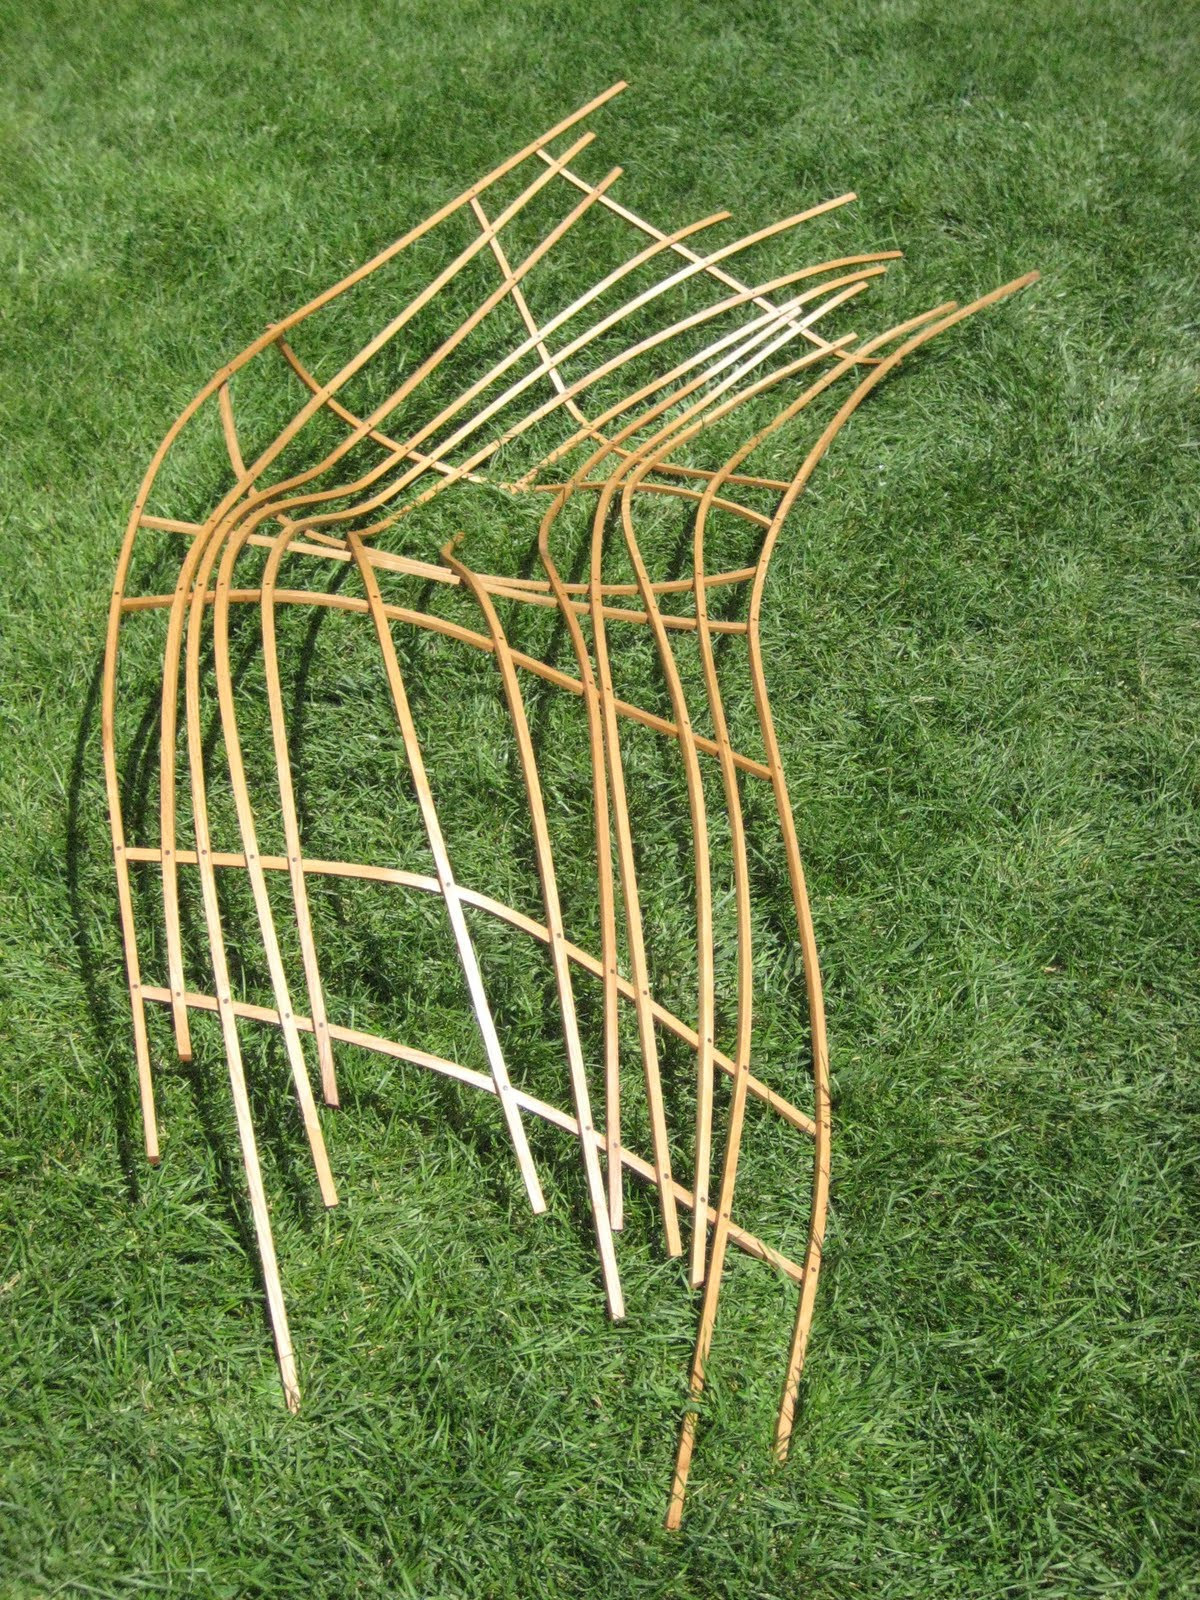 I spent two weeks in July learning how to steam bend wood at Anderson Ranch  Arts Center in Colorado  and this is one of my creations. Sebastian Parker  Sculpture and Furniture Design  STEAM BENDING IN